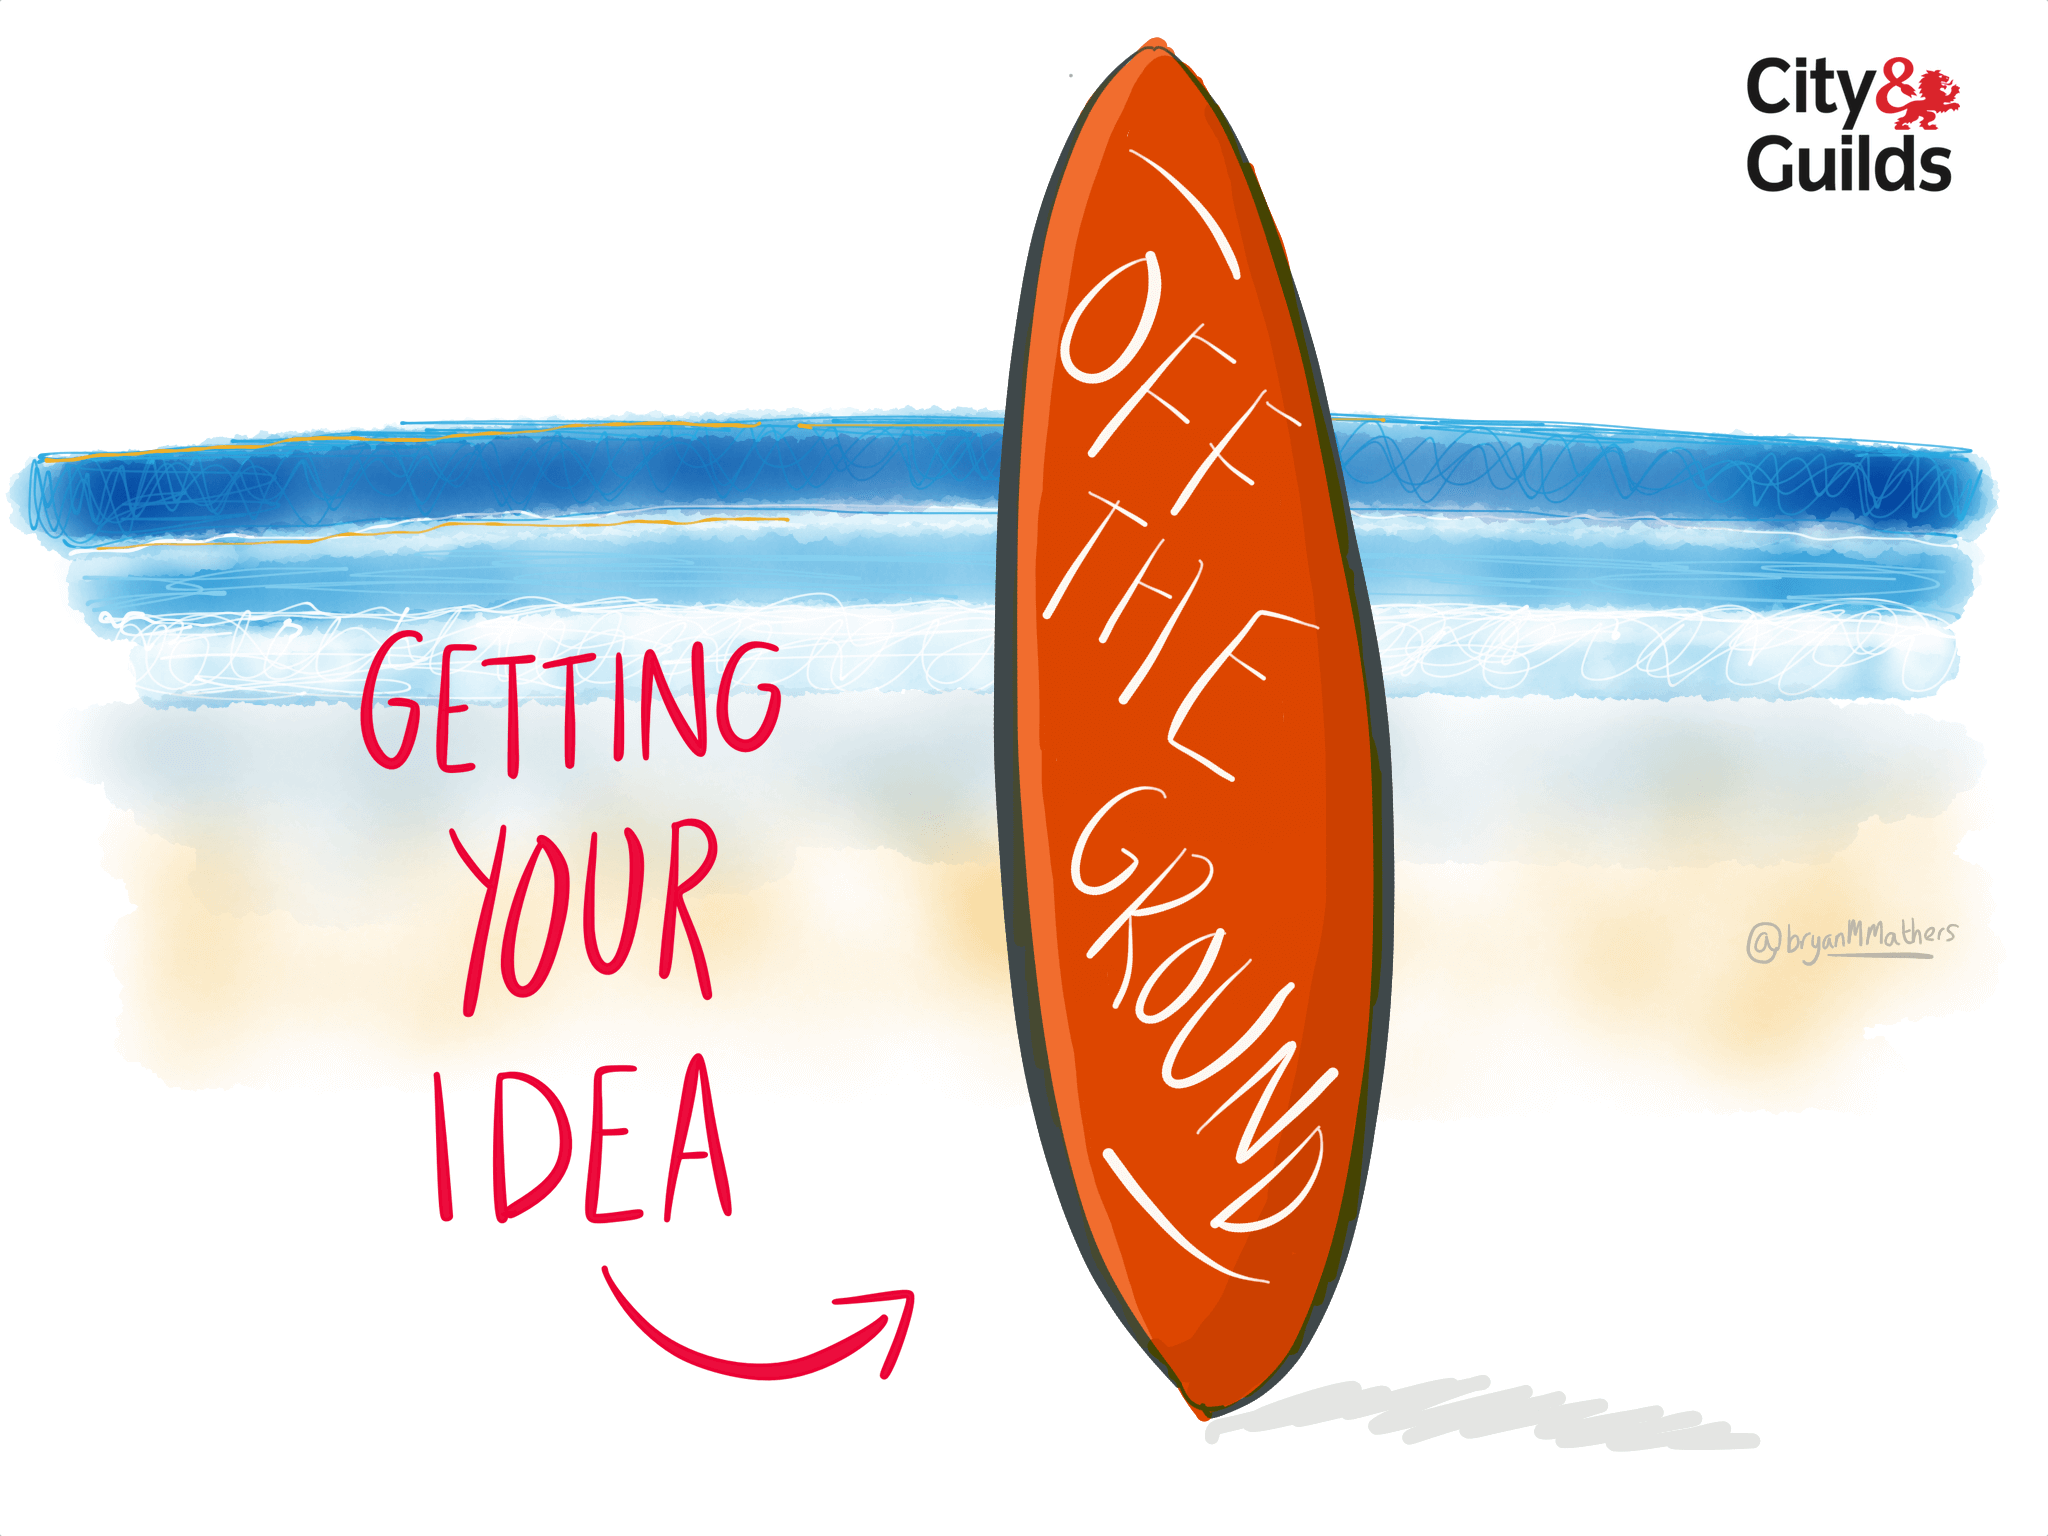 Getting your idea off the ground